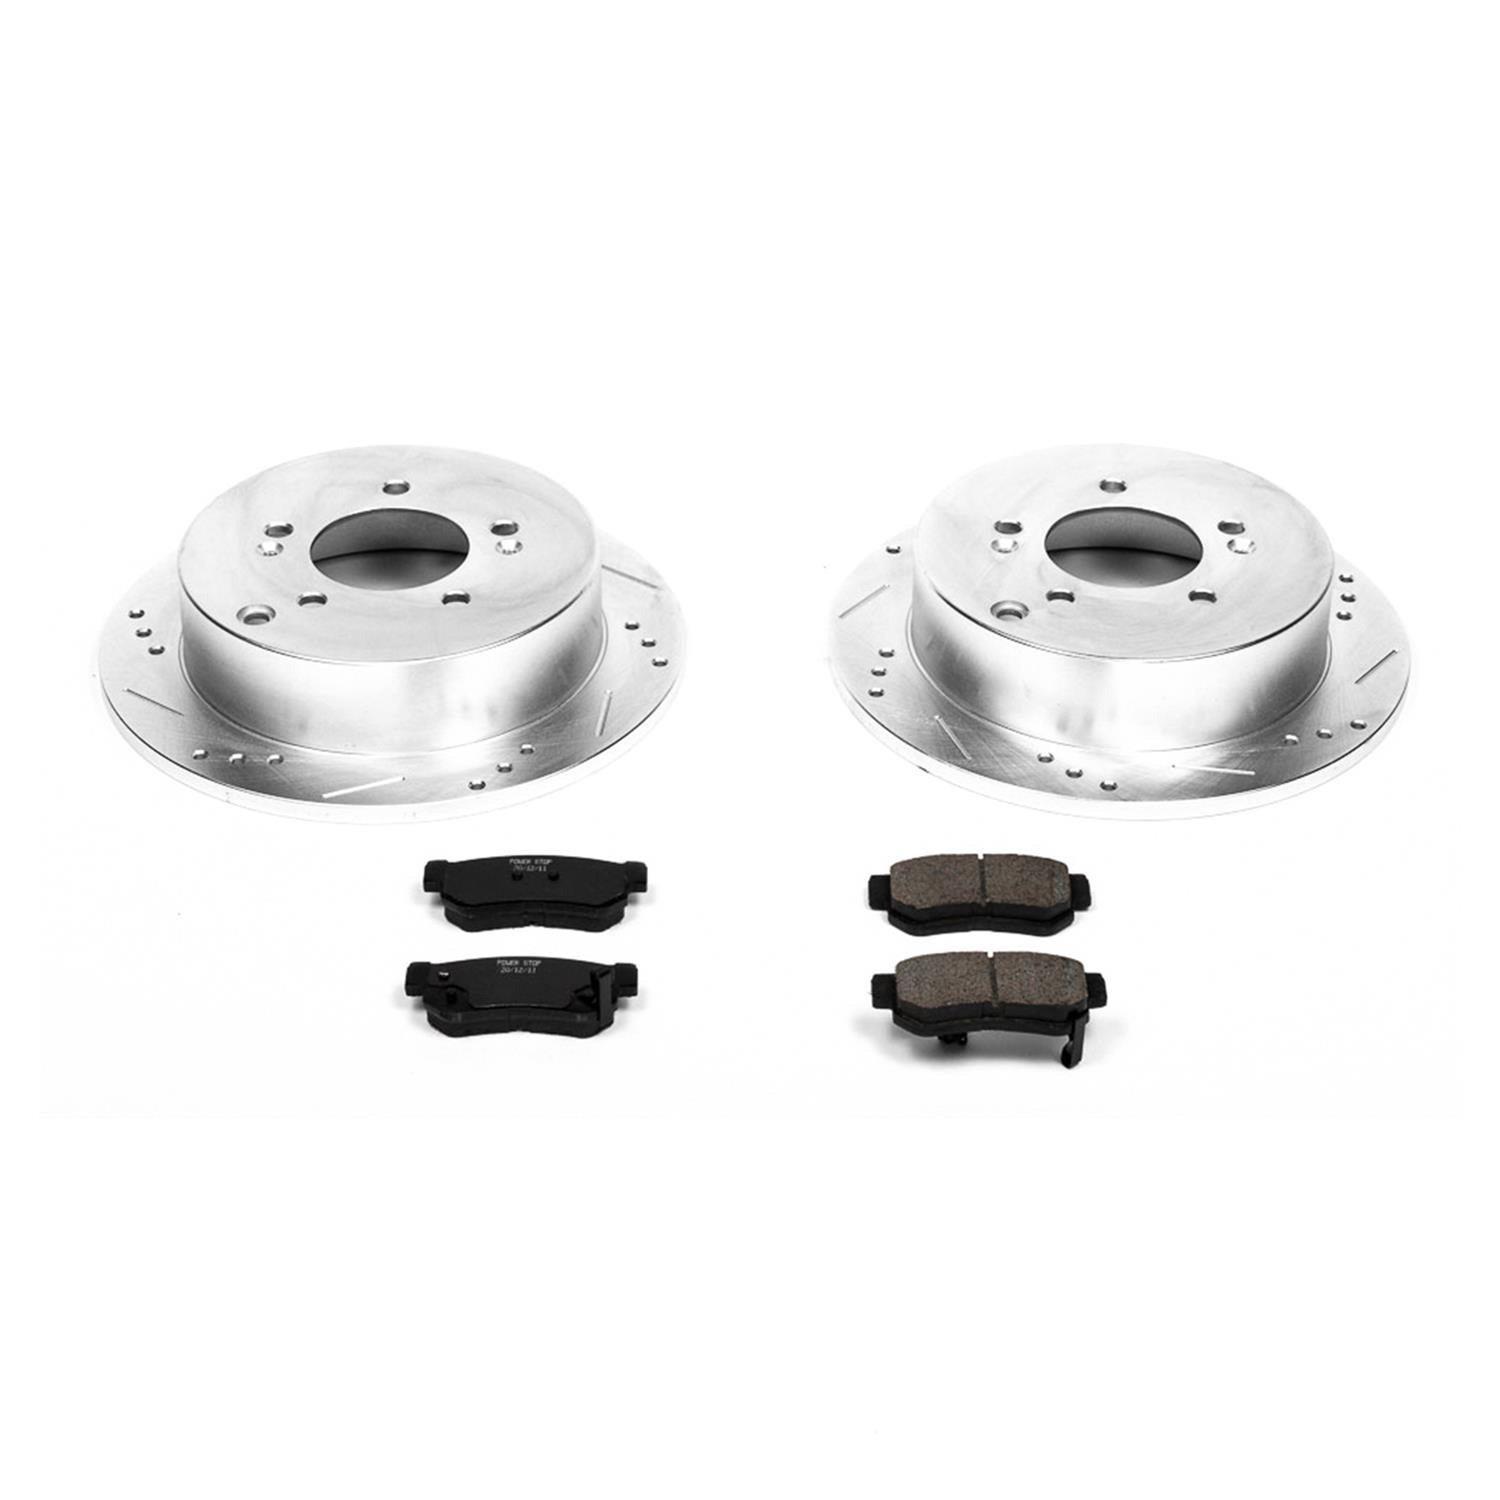 StopTech 925.66005 Select Sport Axle Pack